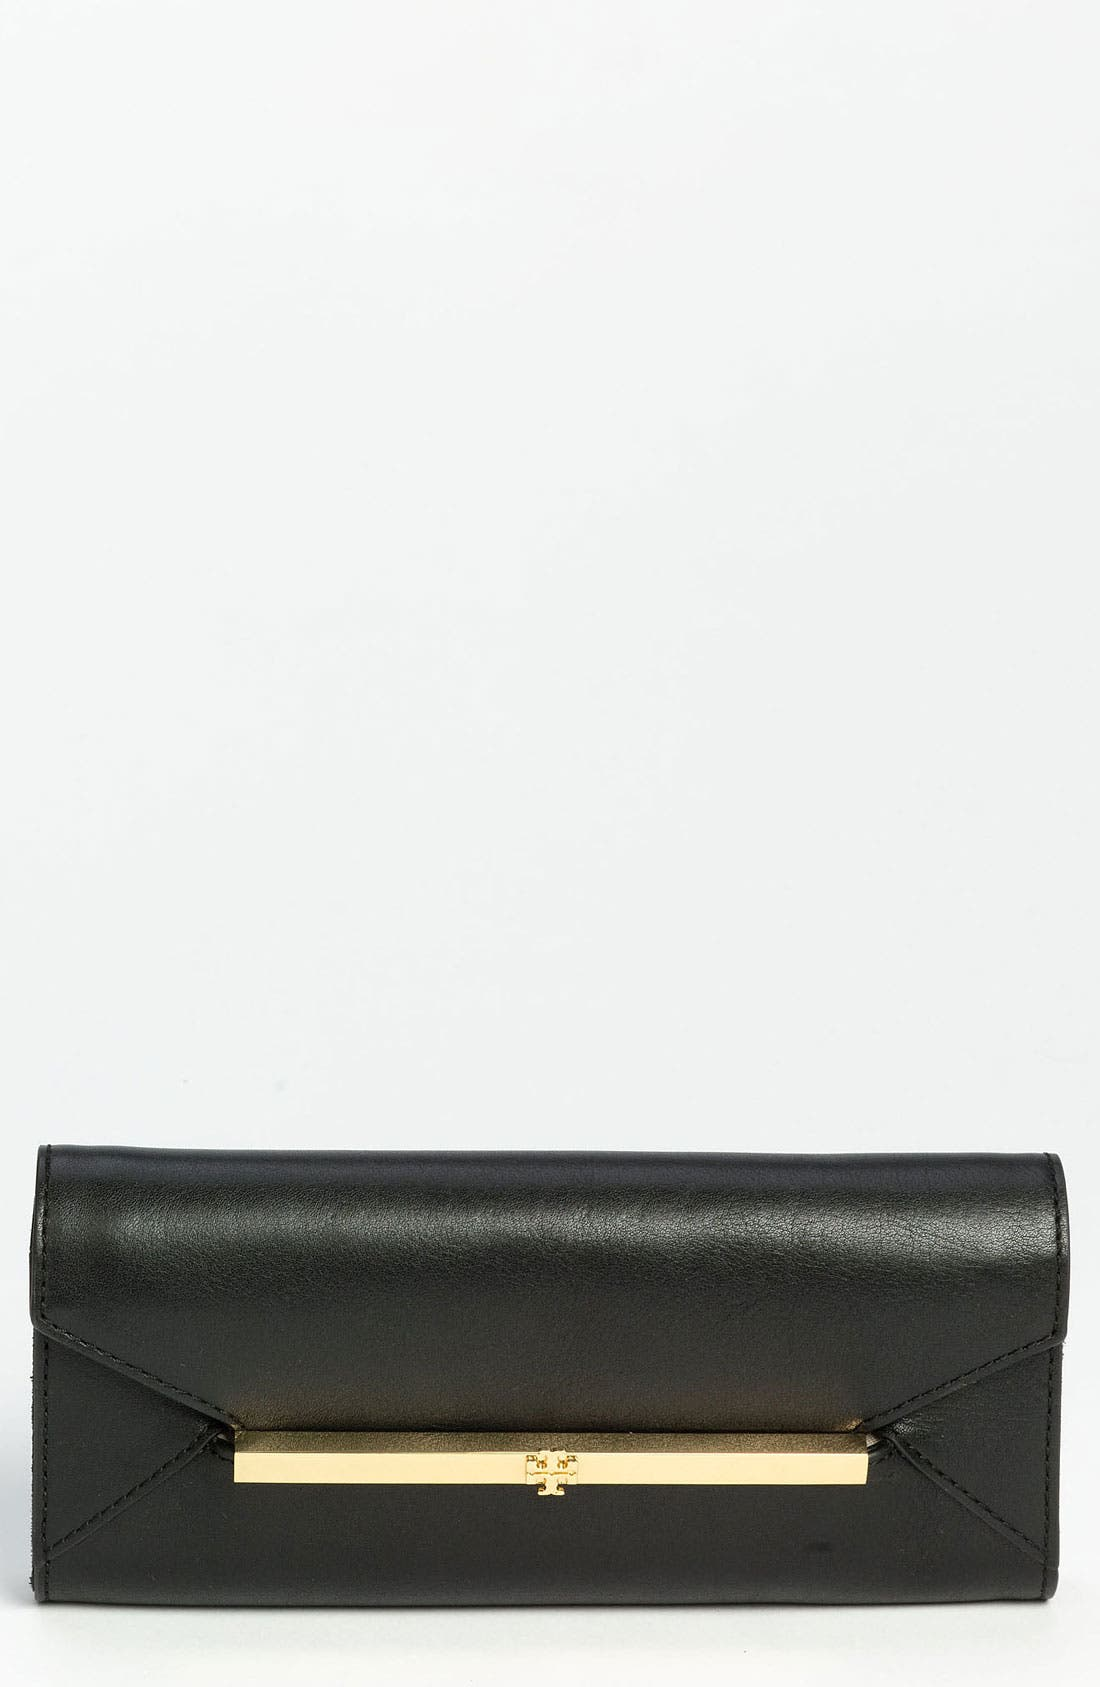 Alternate Image 1 Selected - Tory Burch 'Penelope' Envelope Clutch